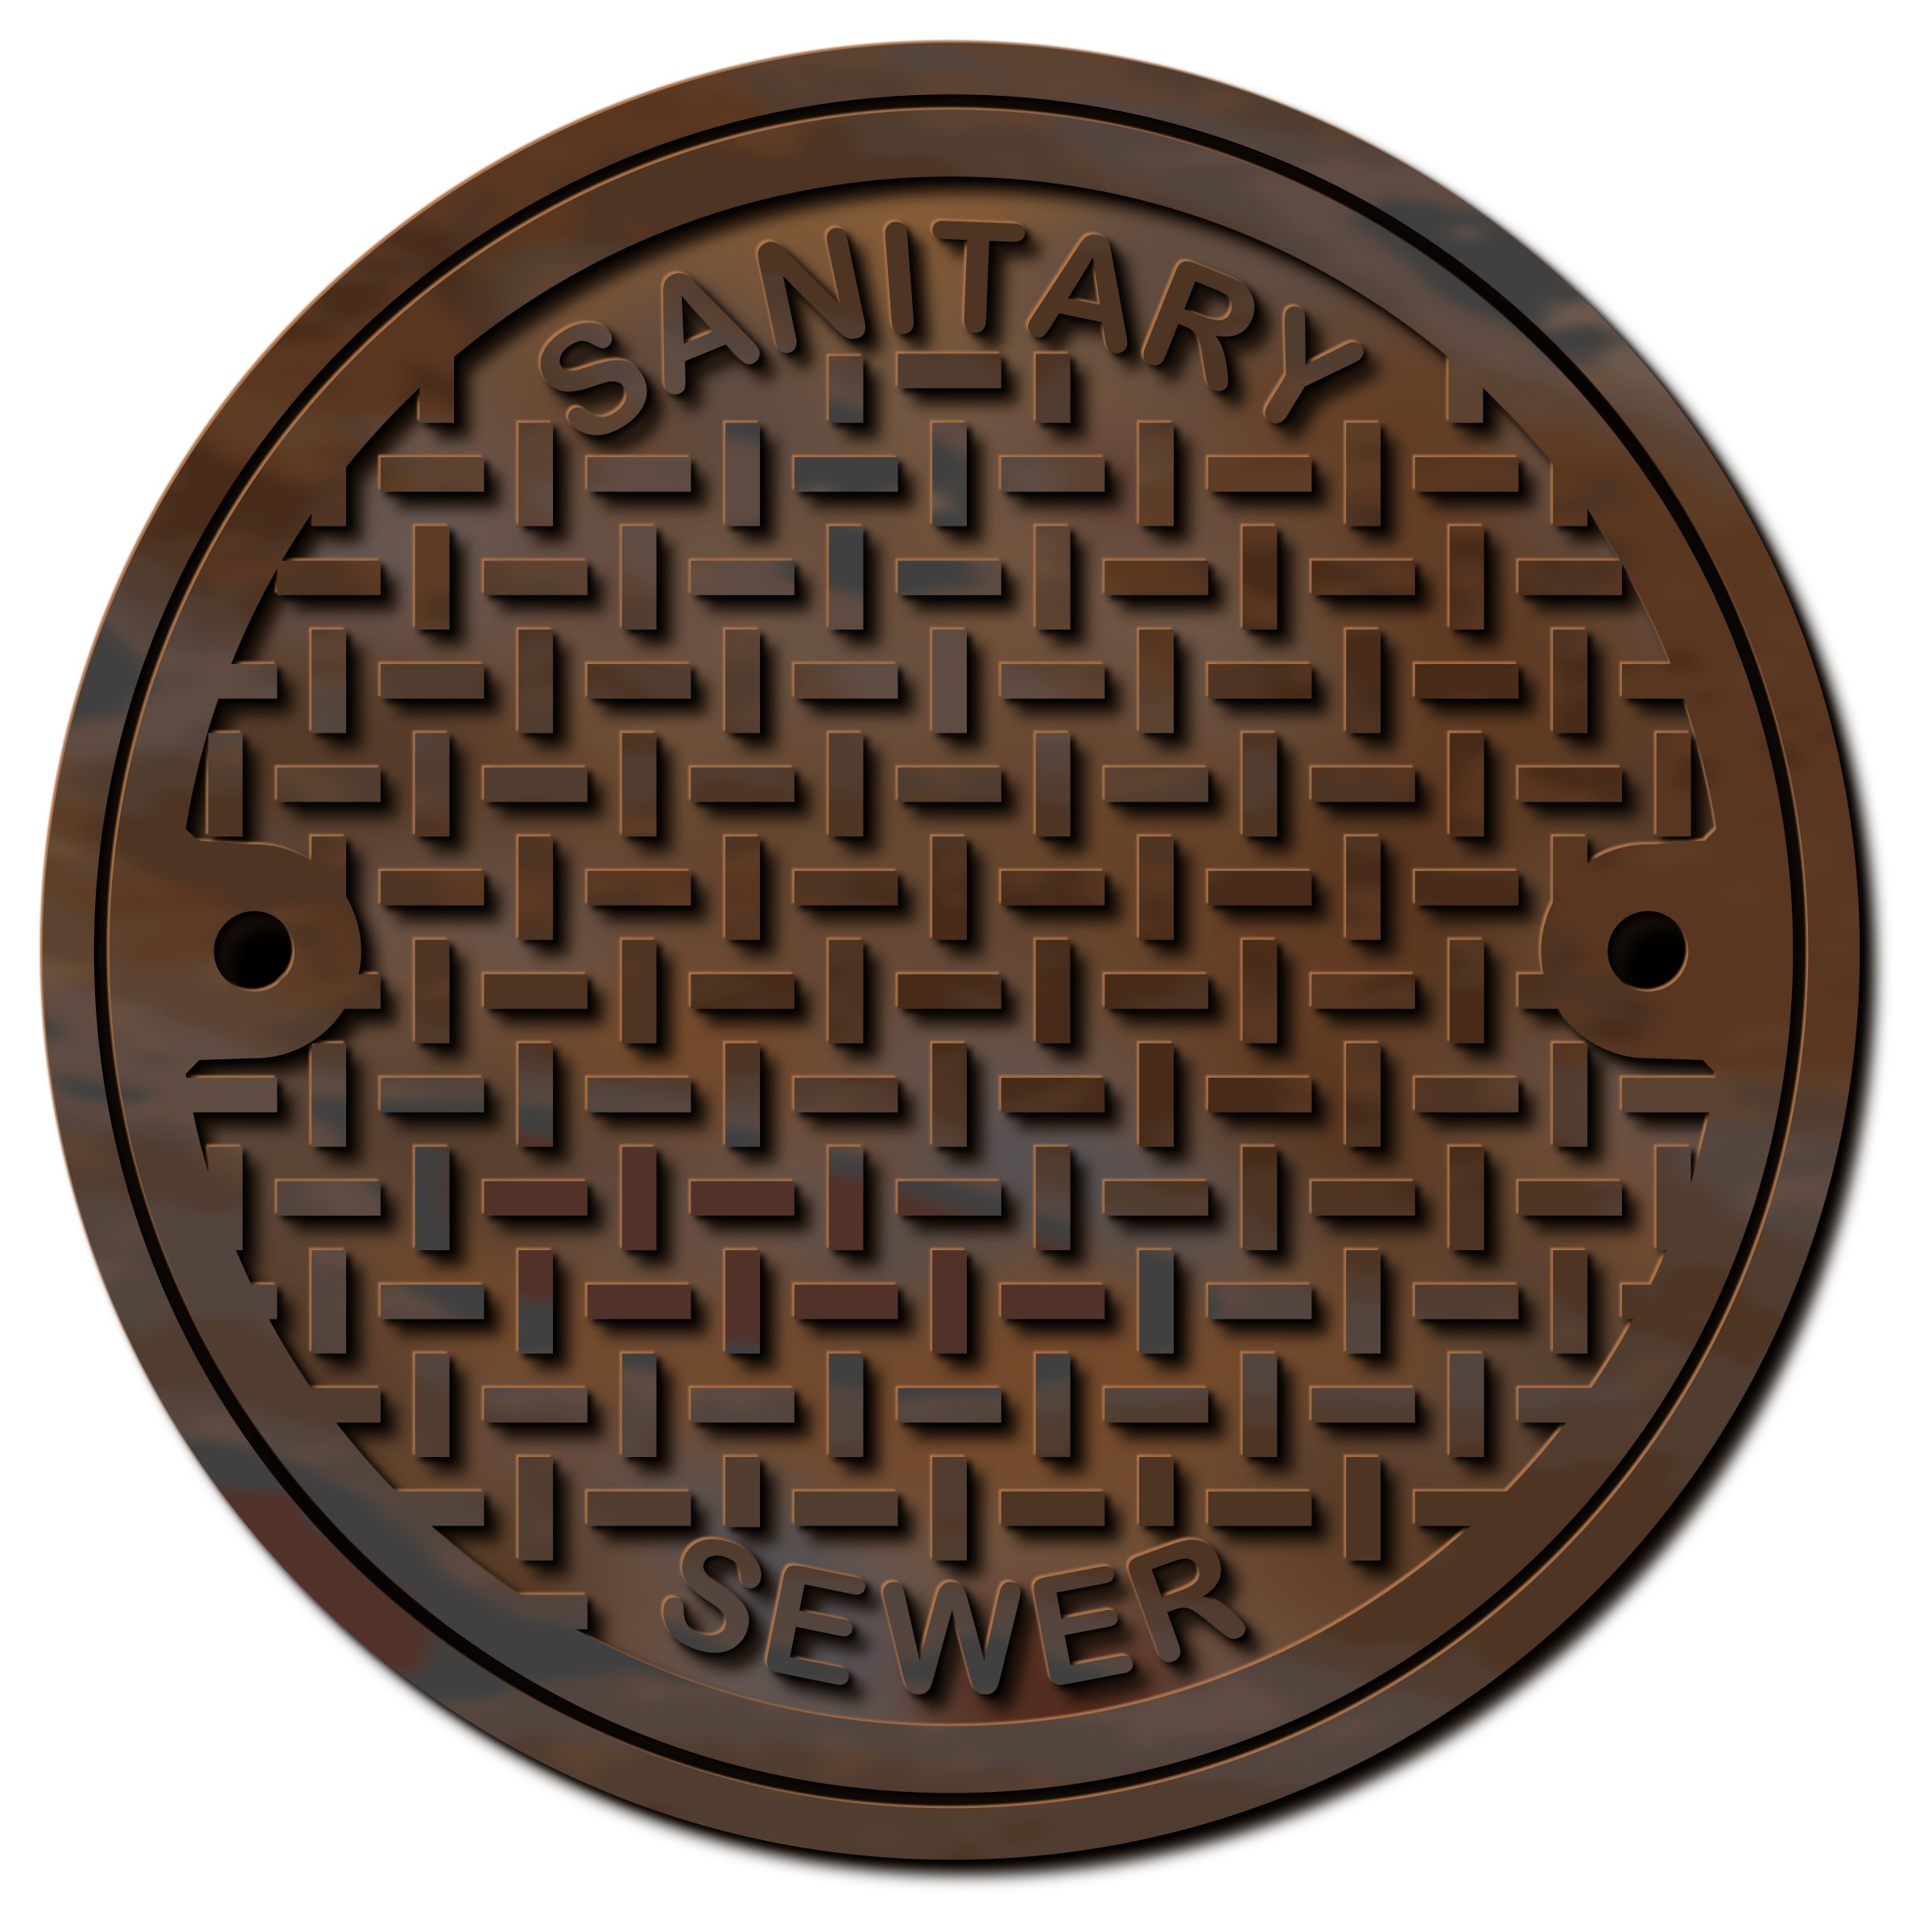 Sewer Manhole Cover by gubrww2